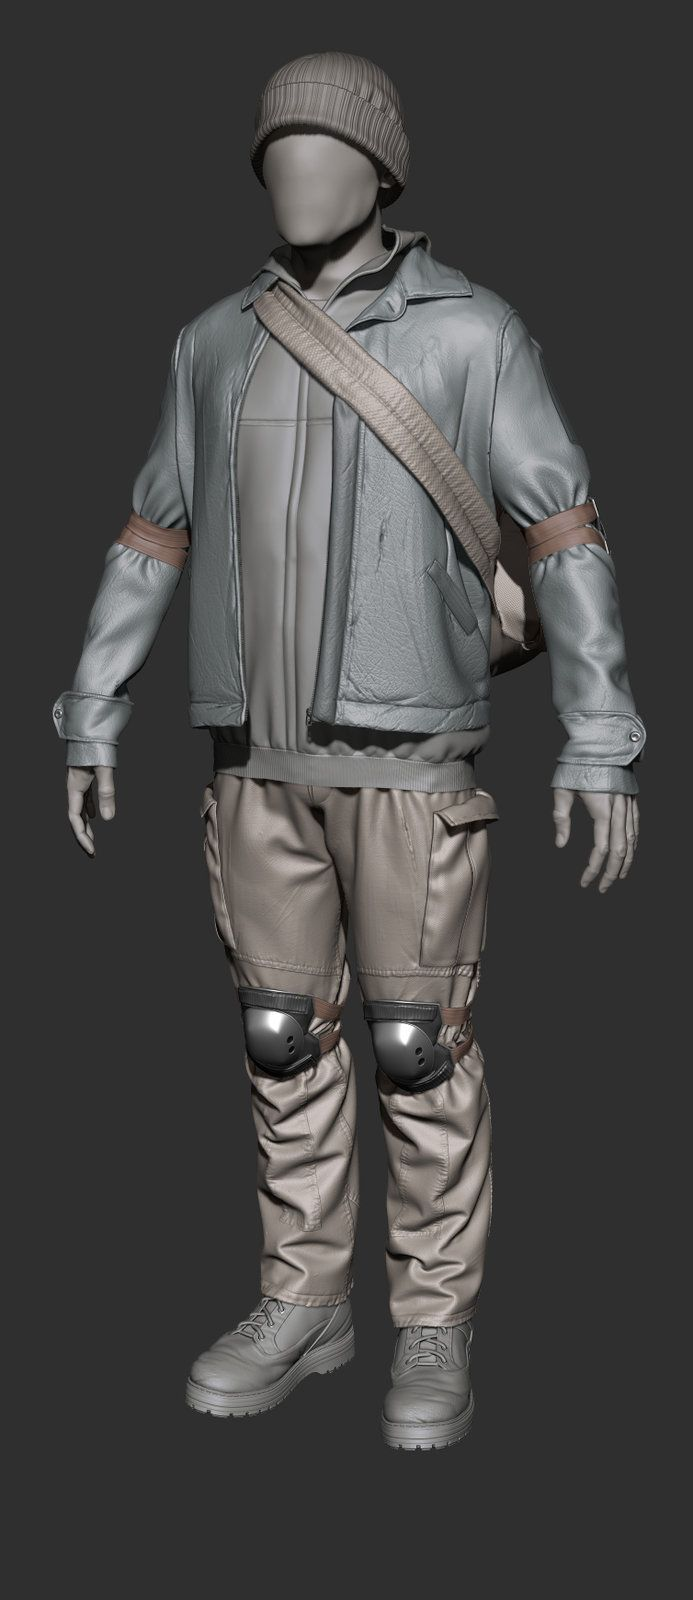 WIP generic male npc, Jon Berry on ArtStation at http://www.artstation.com/artwork/wip-generic-male-npc